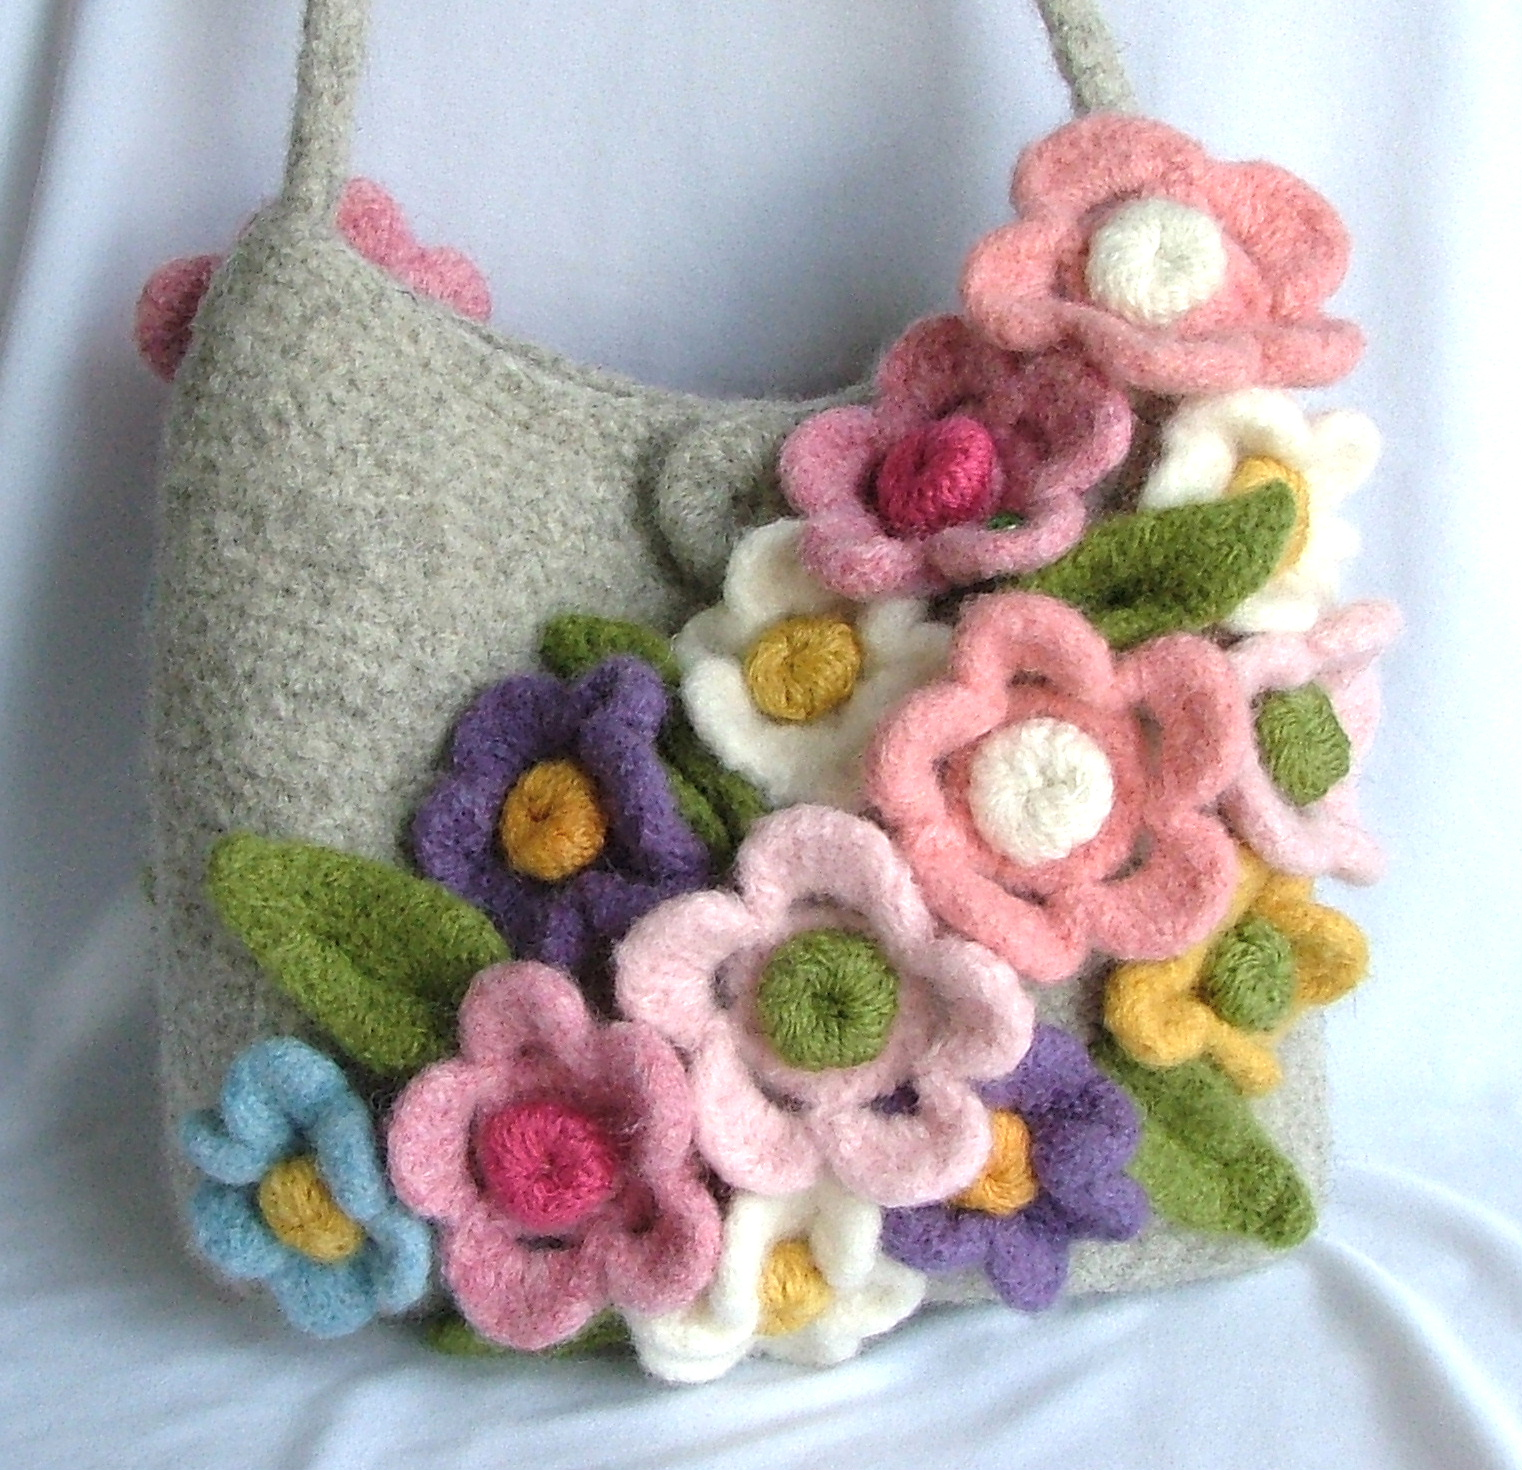 Suzies Stuff: MAY TRAPEZOID FELTED BAG (C)